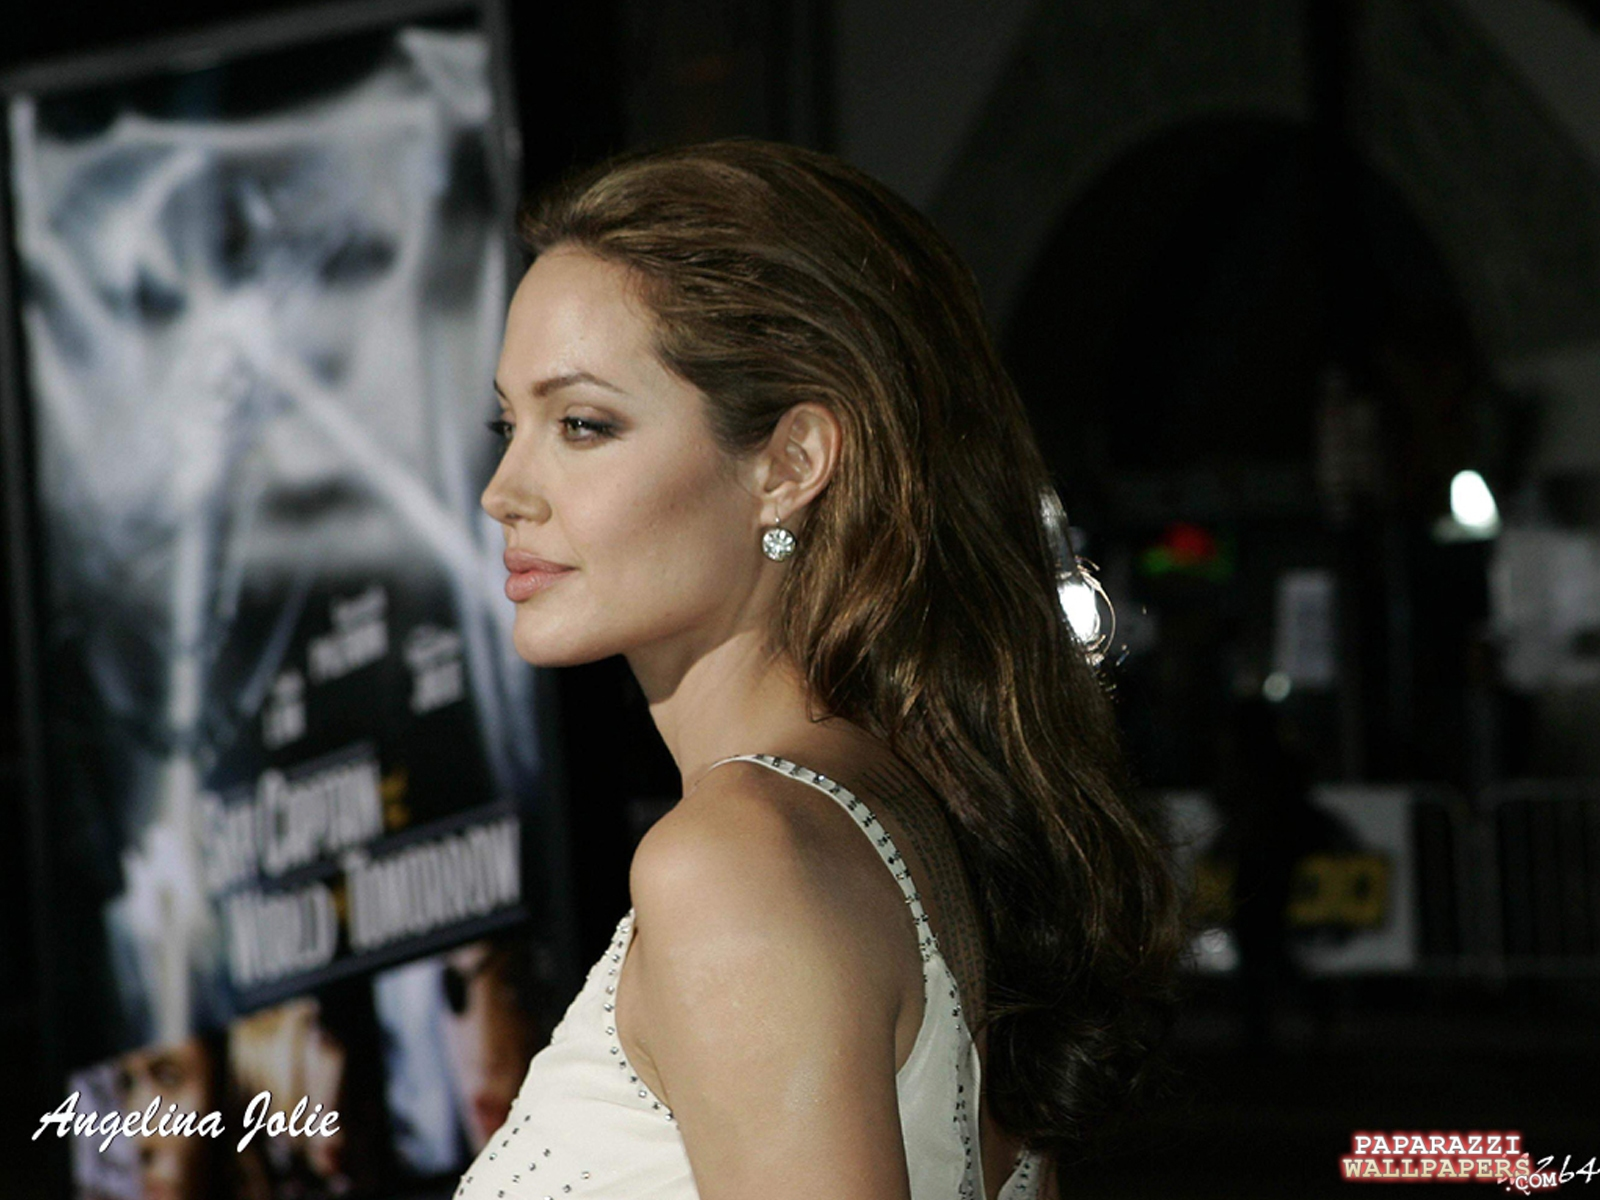 angelina jolie wallpapers 014